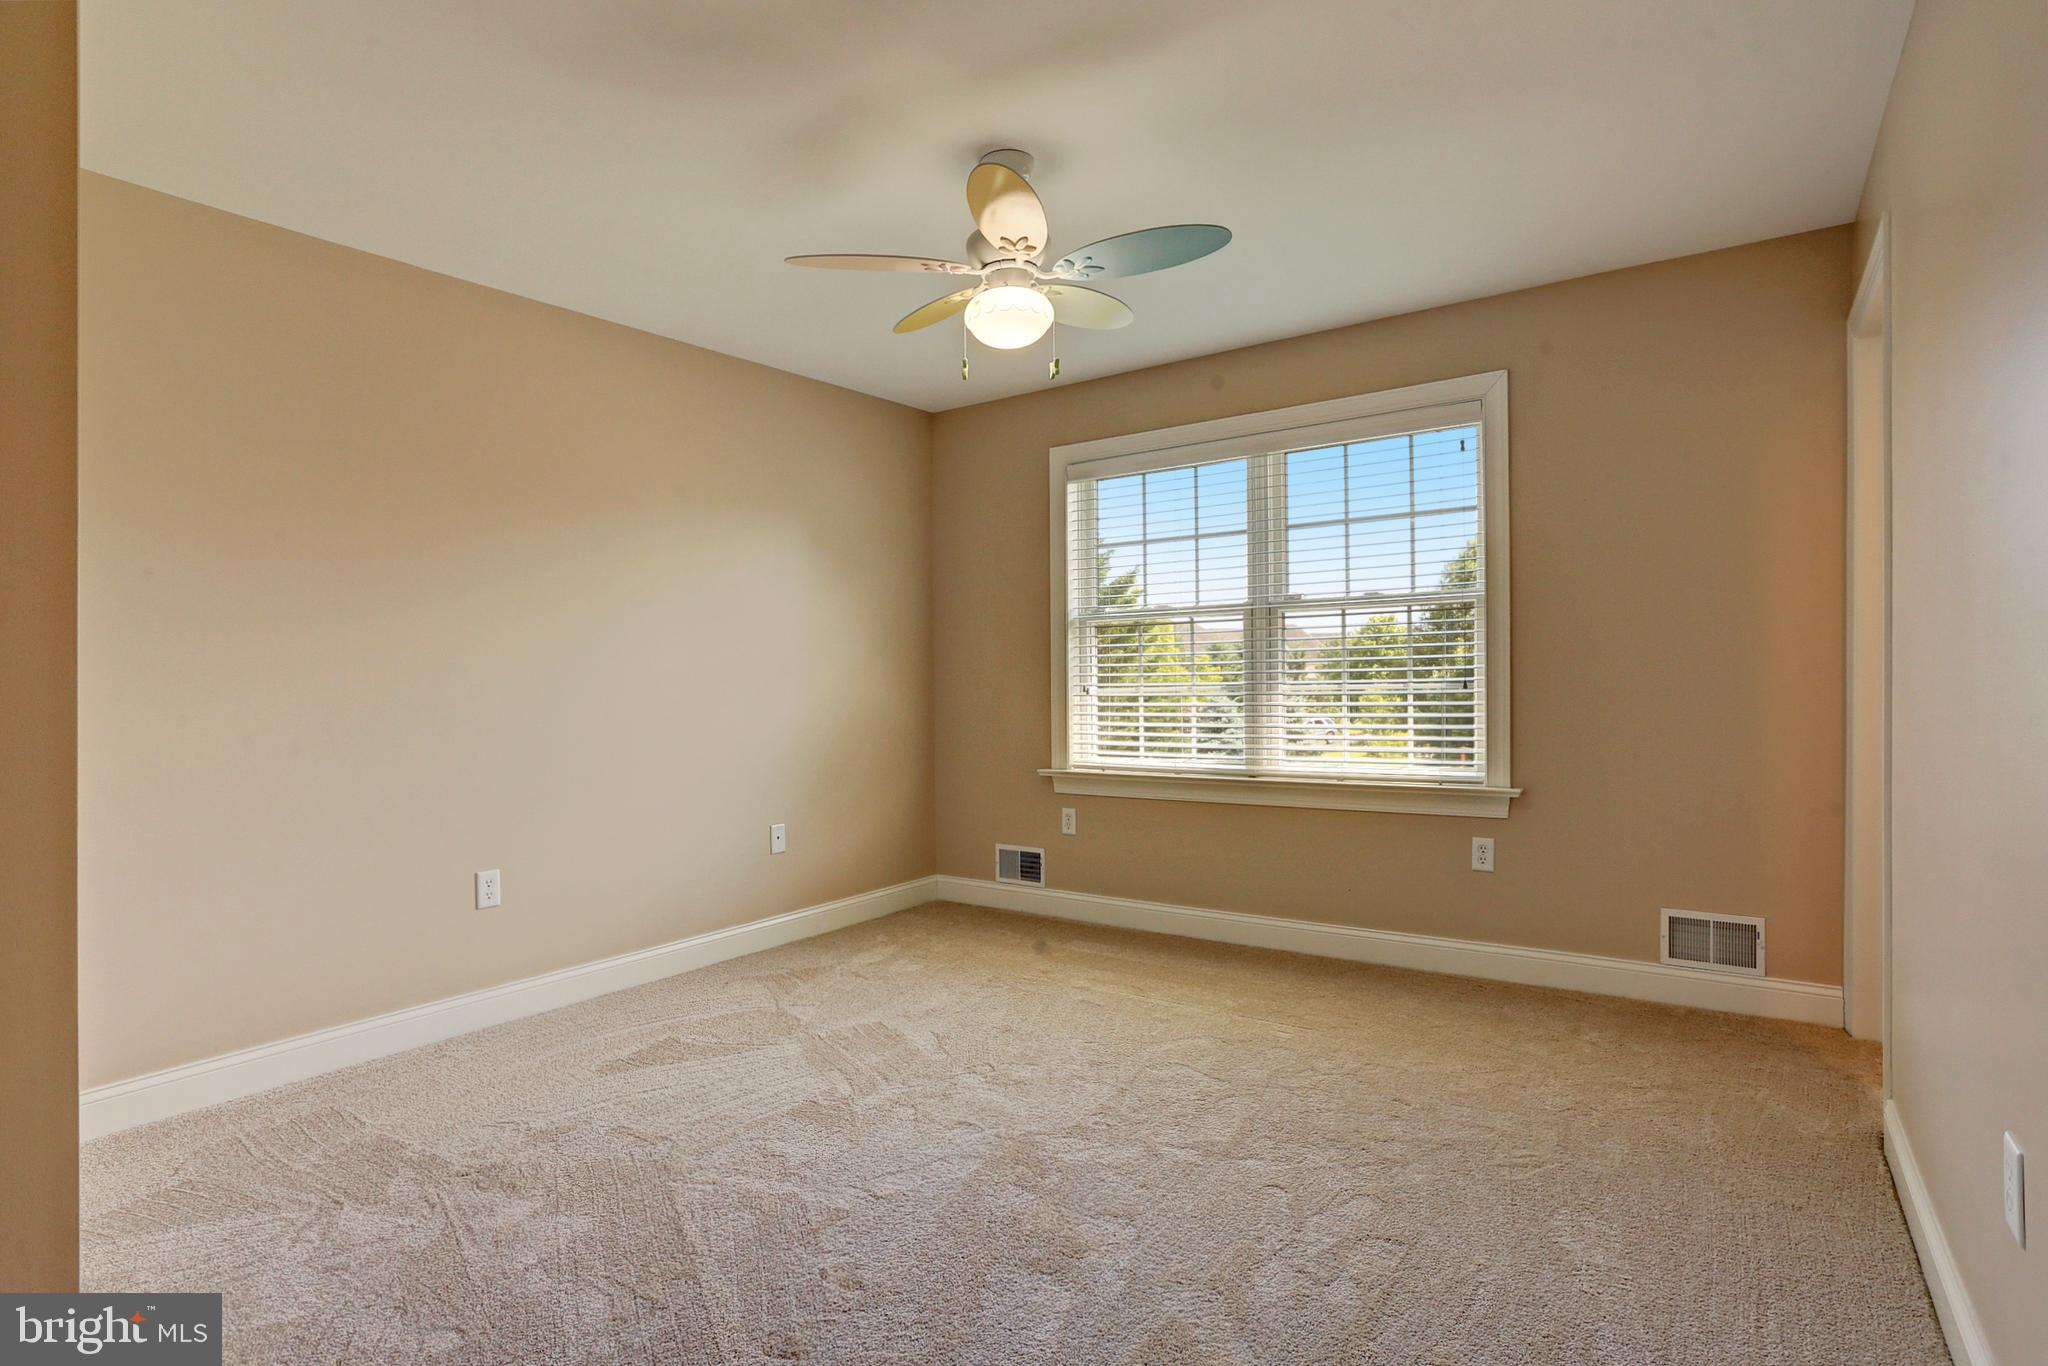 Bedroom 3 with Carpet and a Ceiling Fan